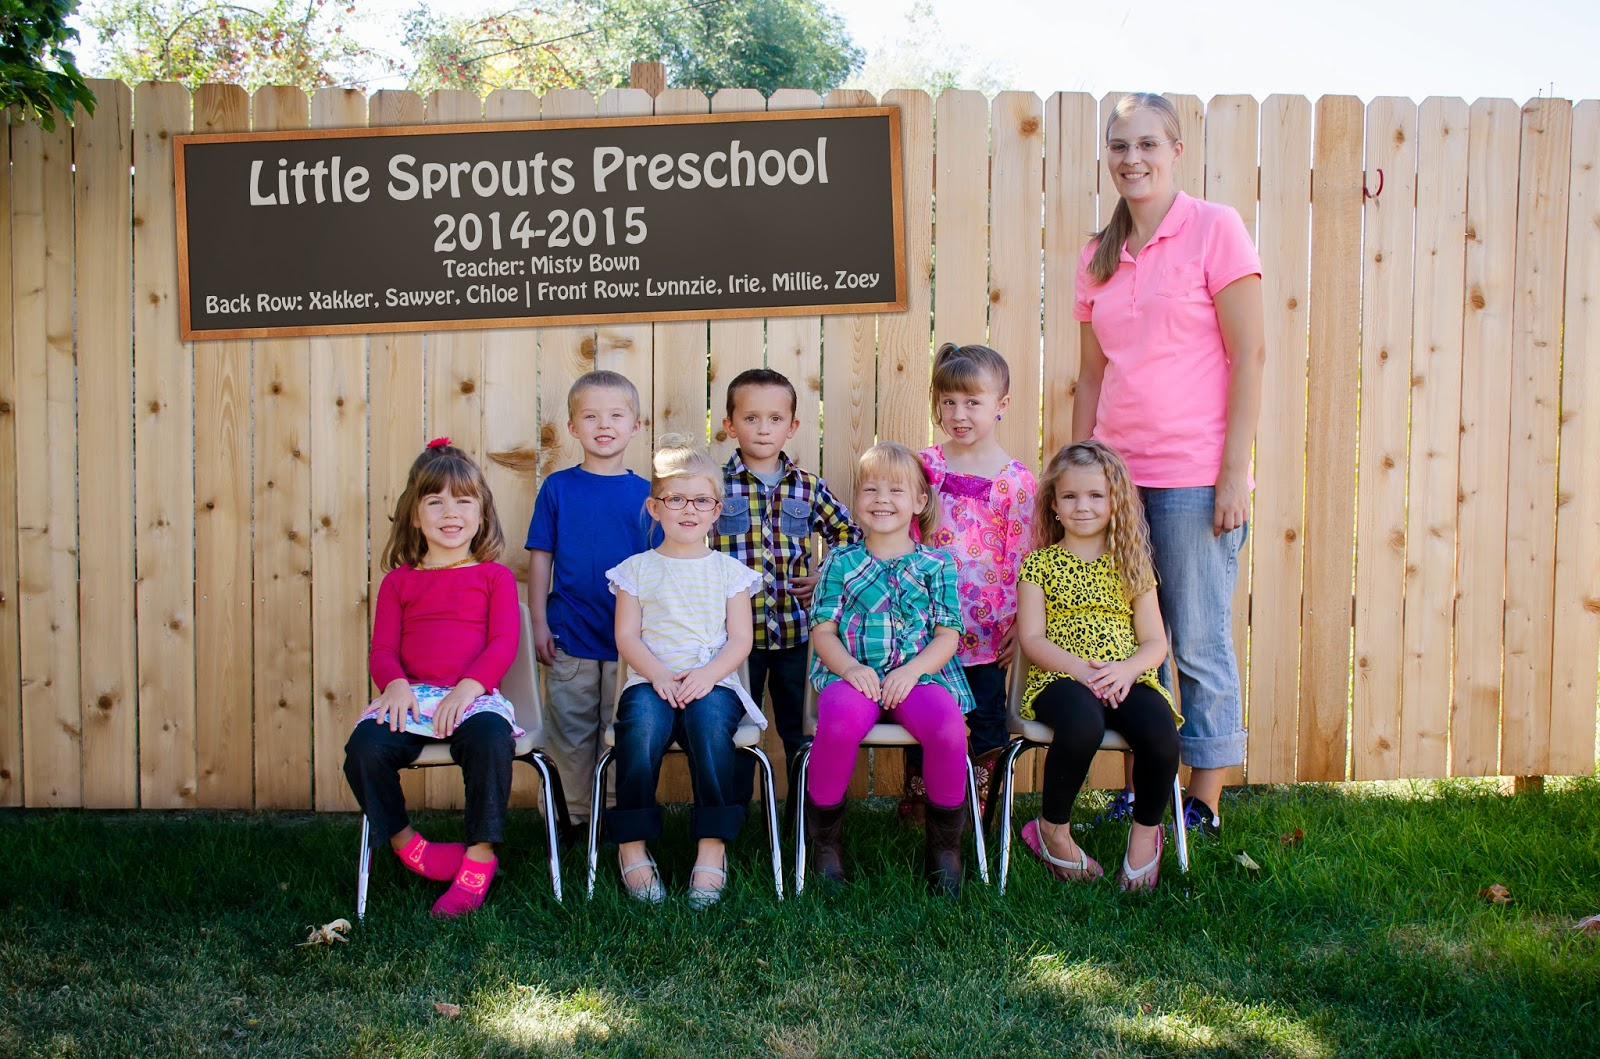 Little Sprouts Preschool | Class Pictures 2014-2015